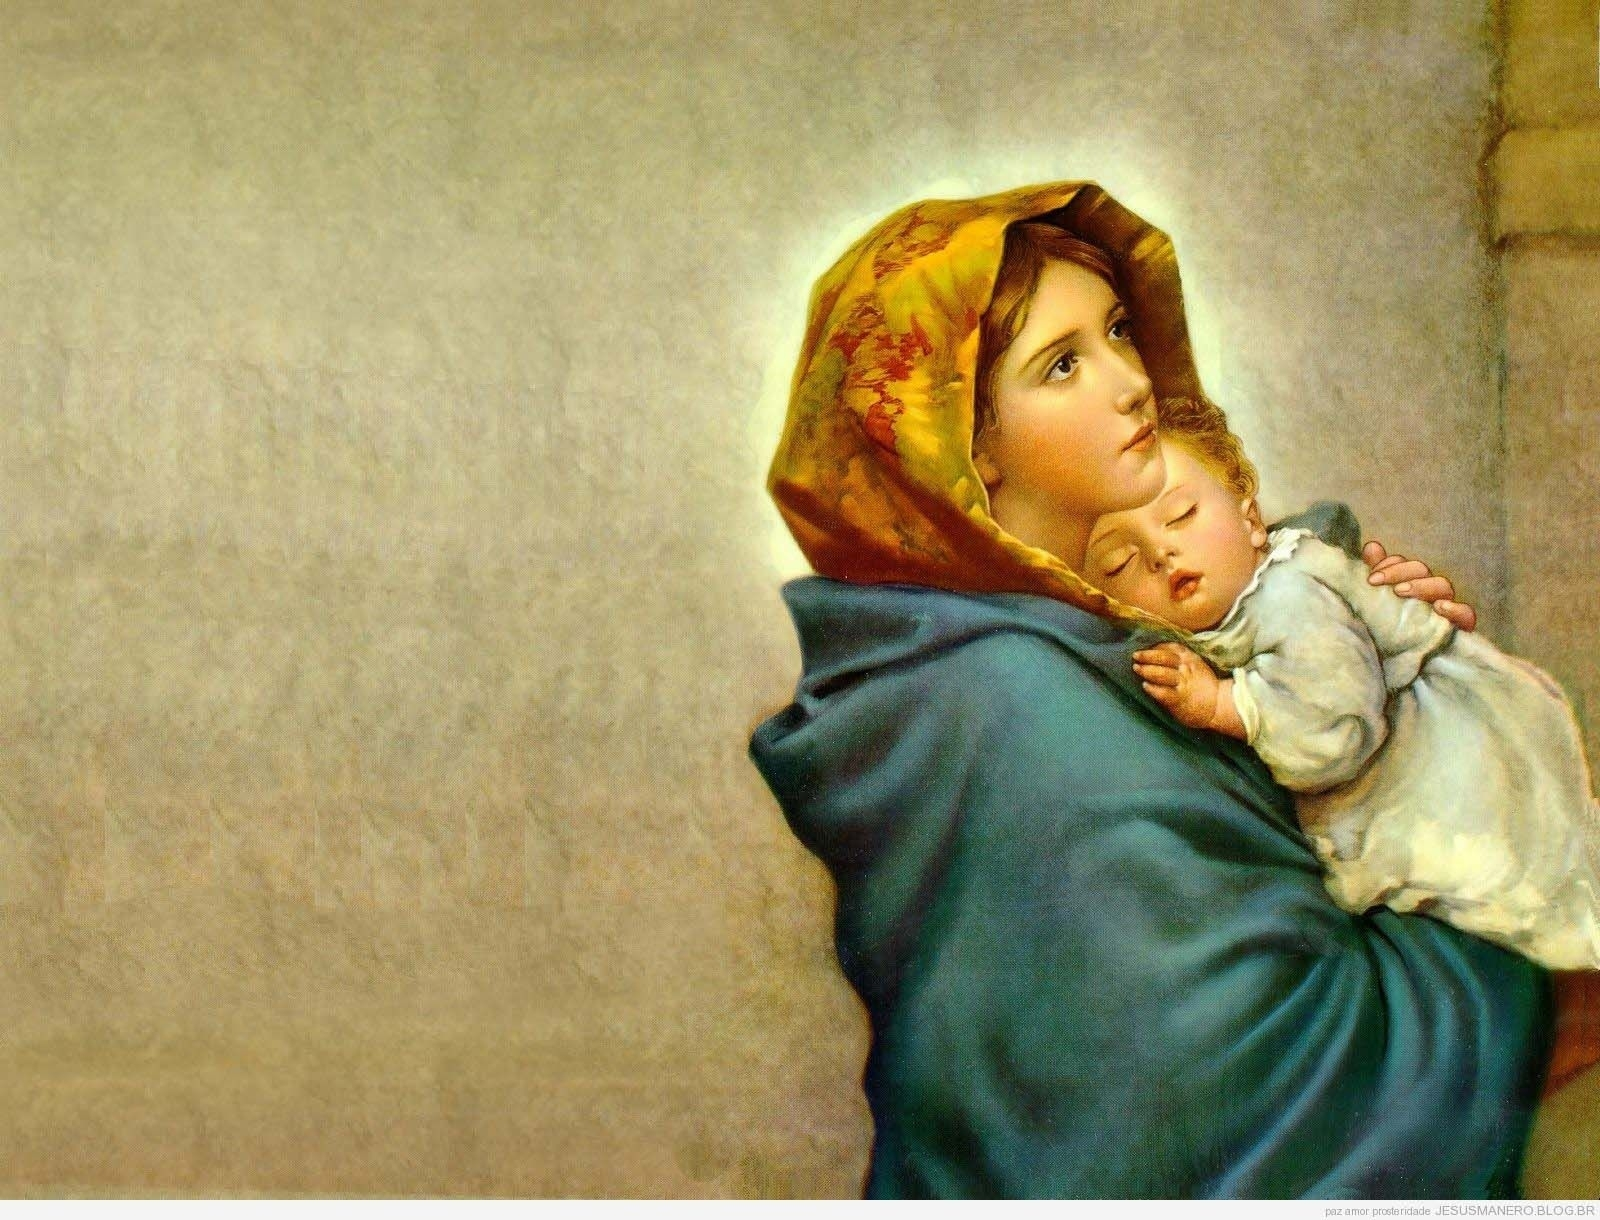 mother mary with baby jesus wallpapers - wallpaper cave | adorable